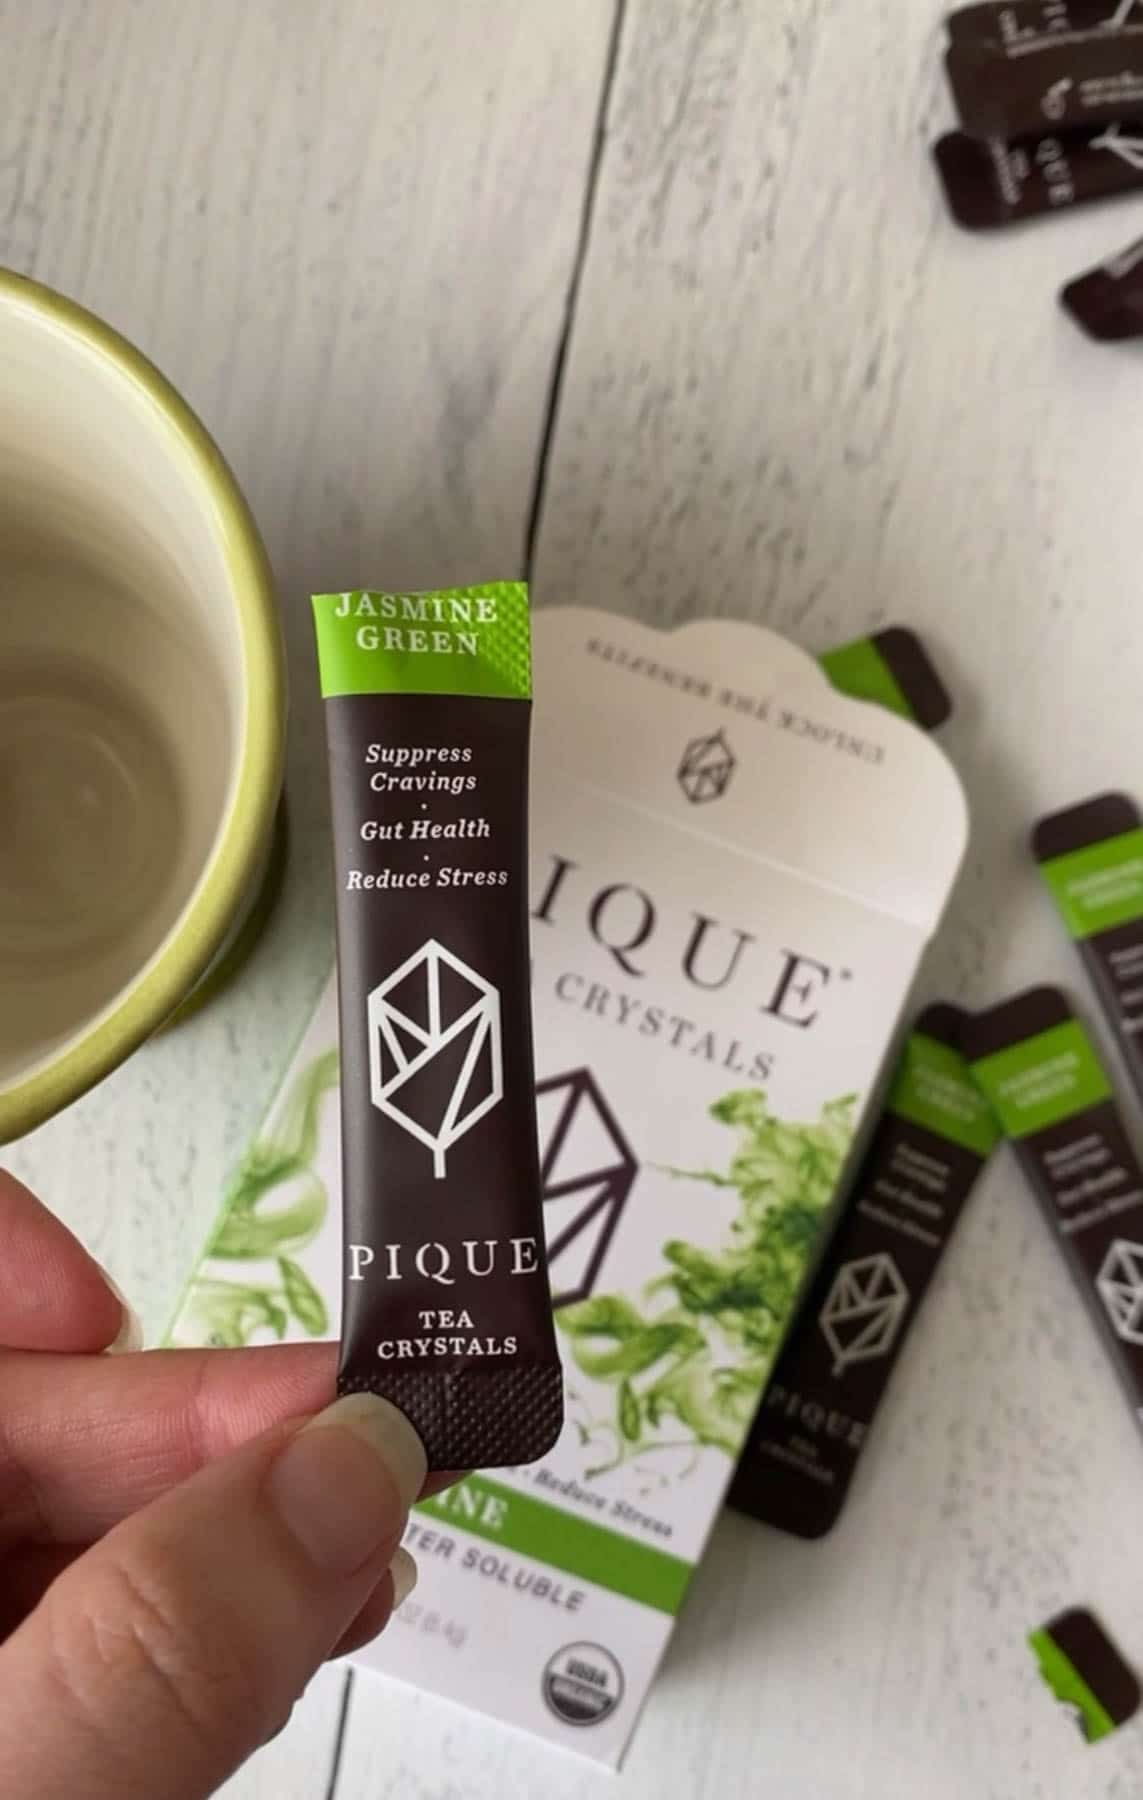 english breakfast tea packet from Pique